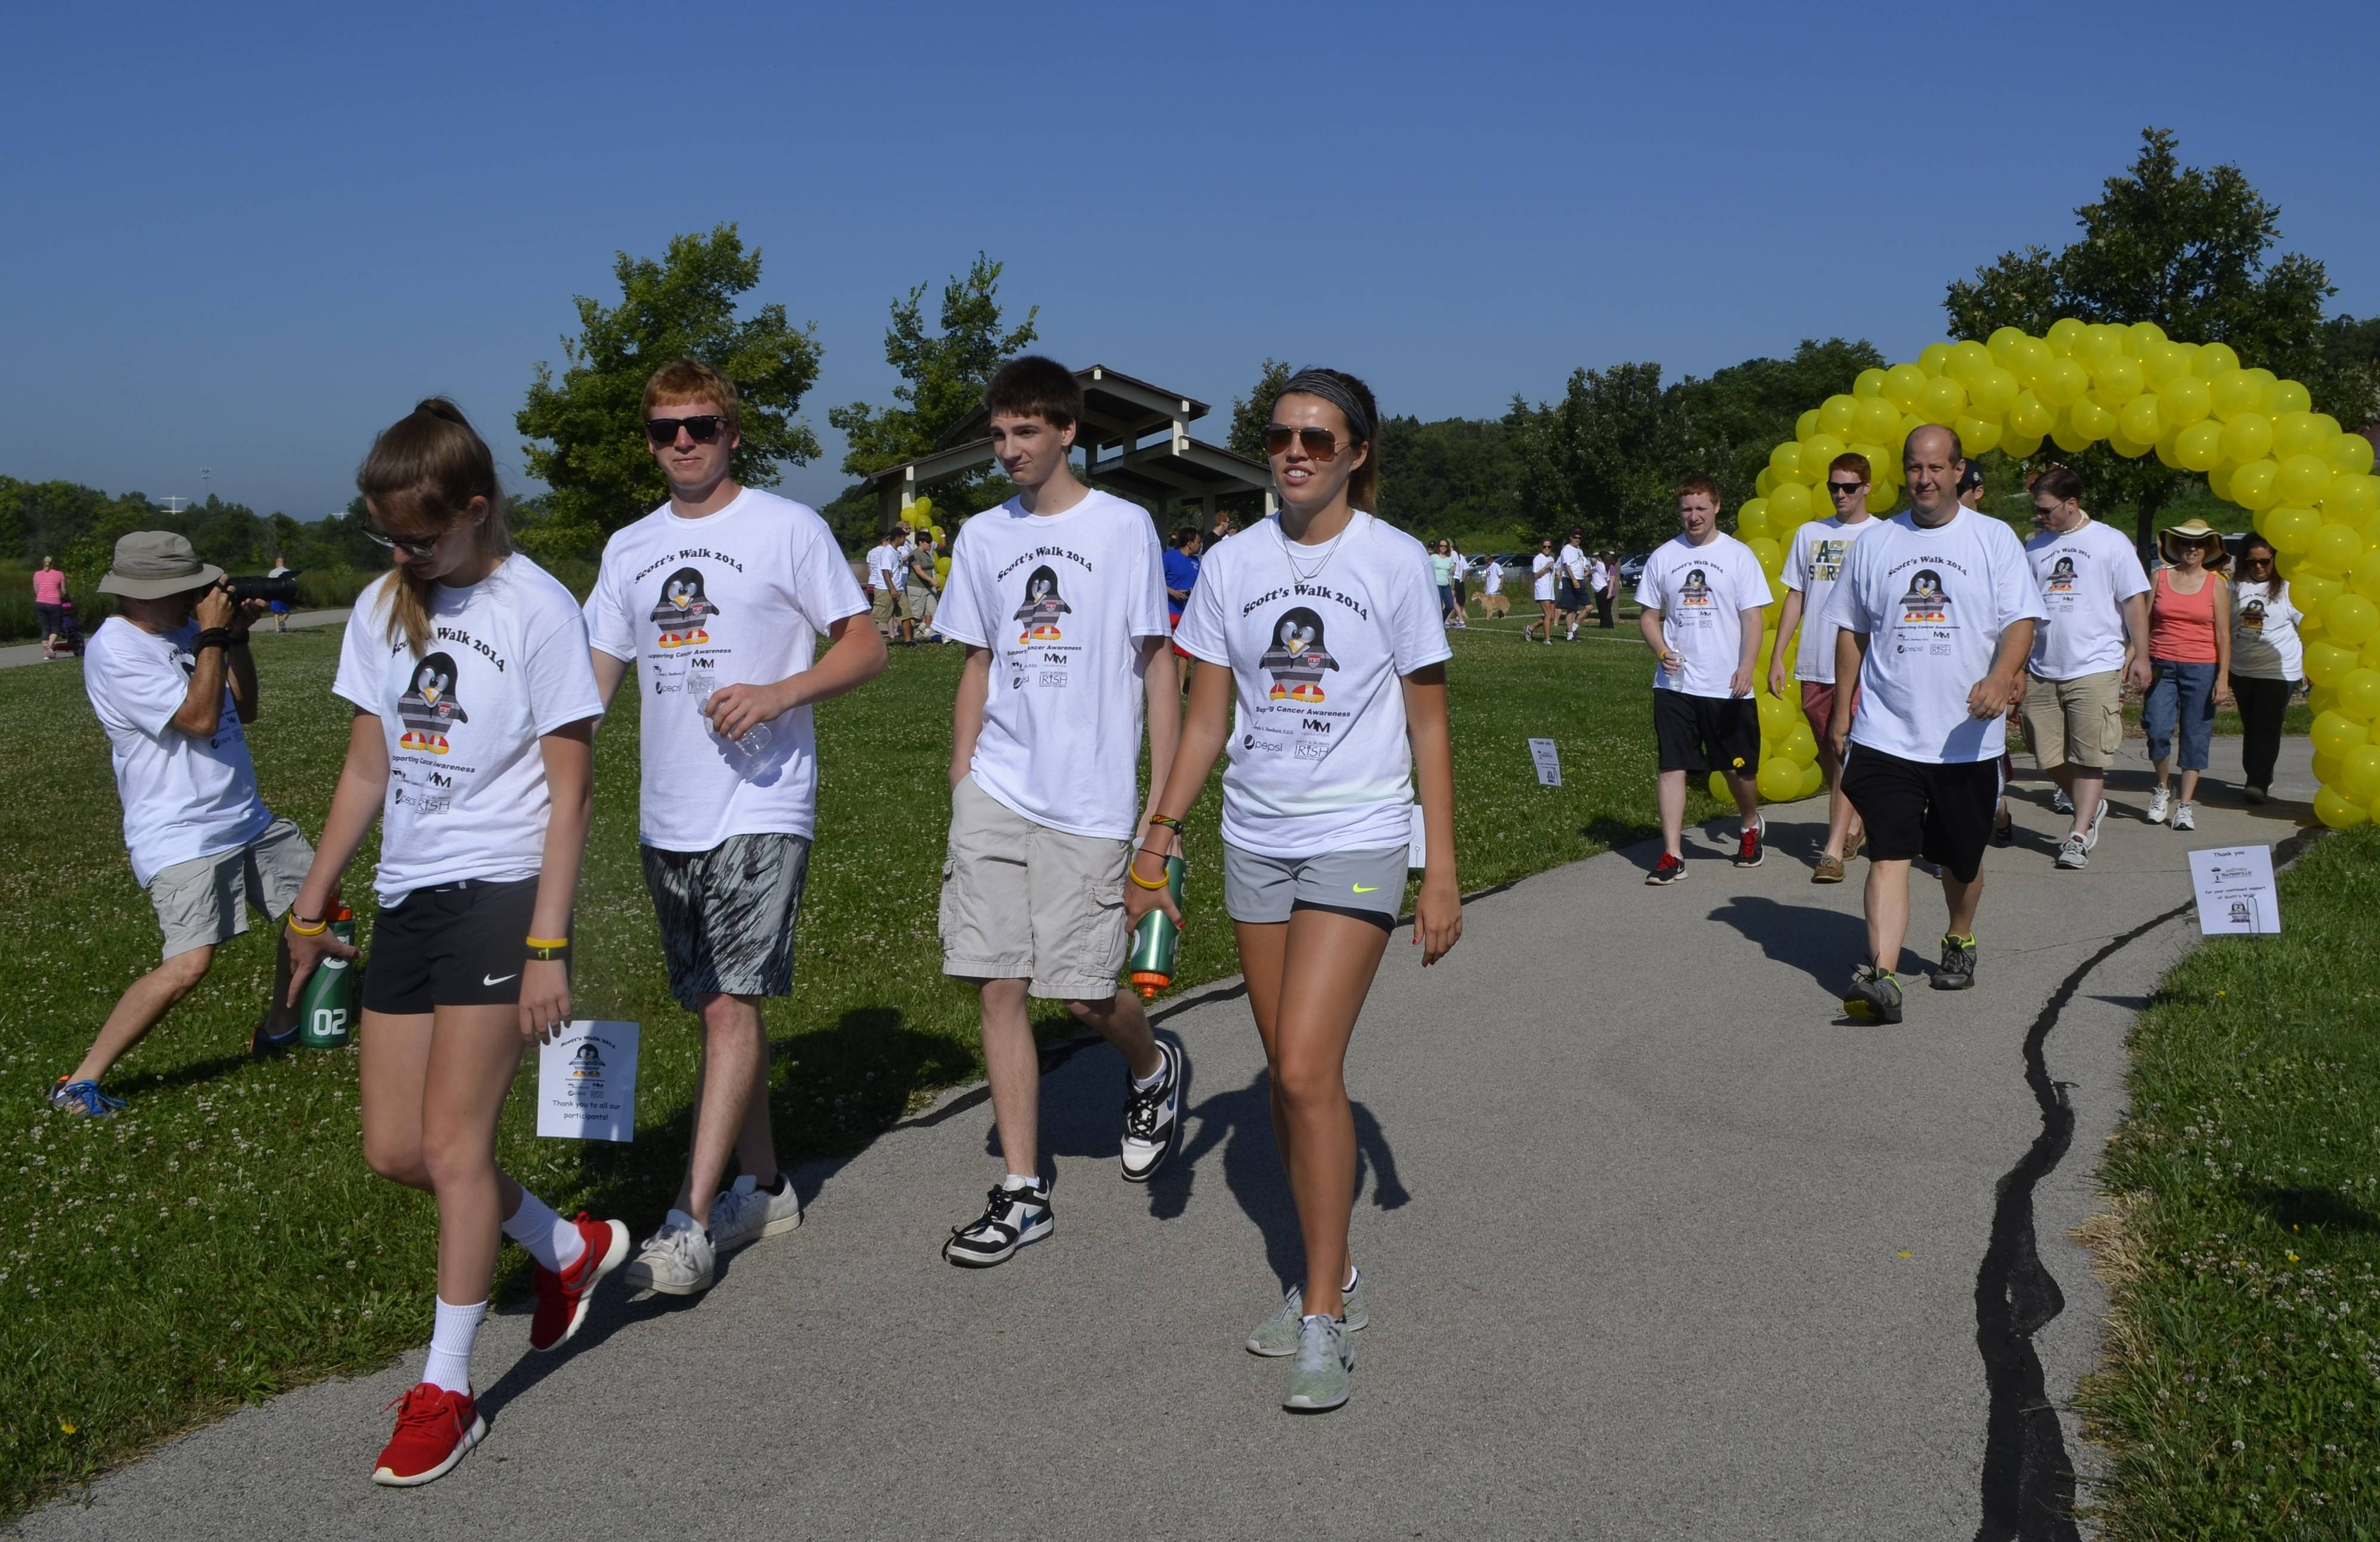 Roughly 175 people participated in Sunday's Scott's Walk in south Naperville to raise awareness about testicular cancer.